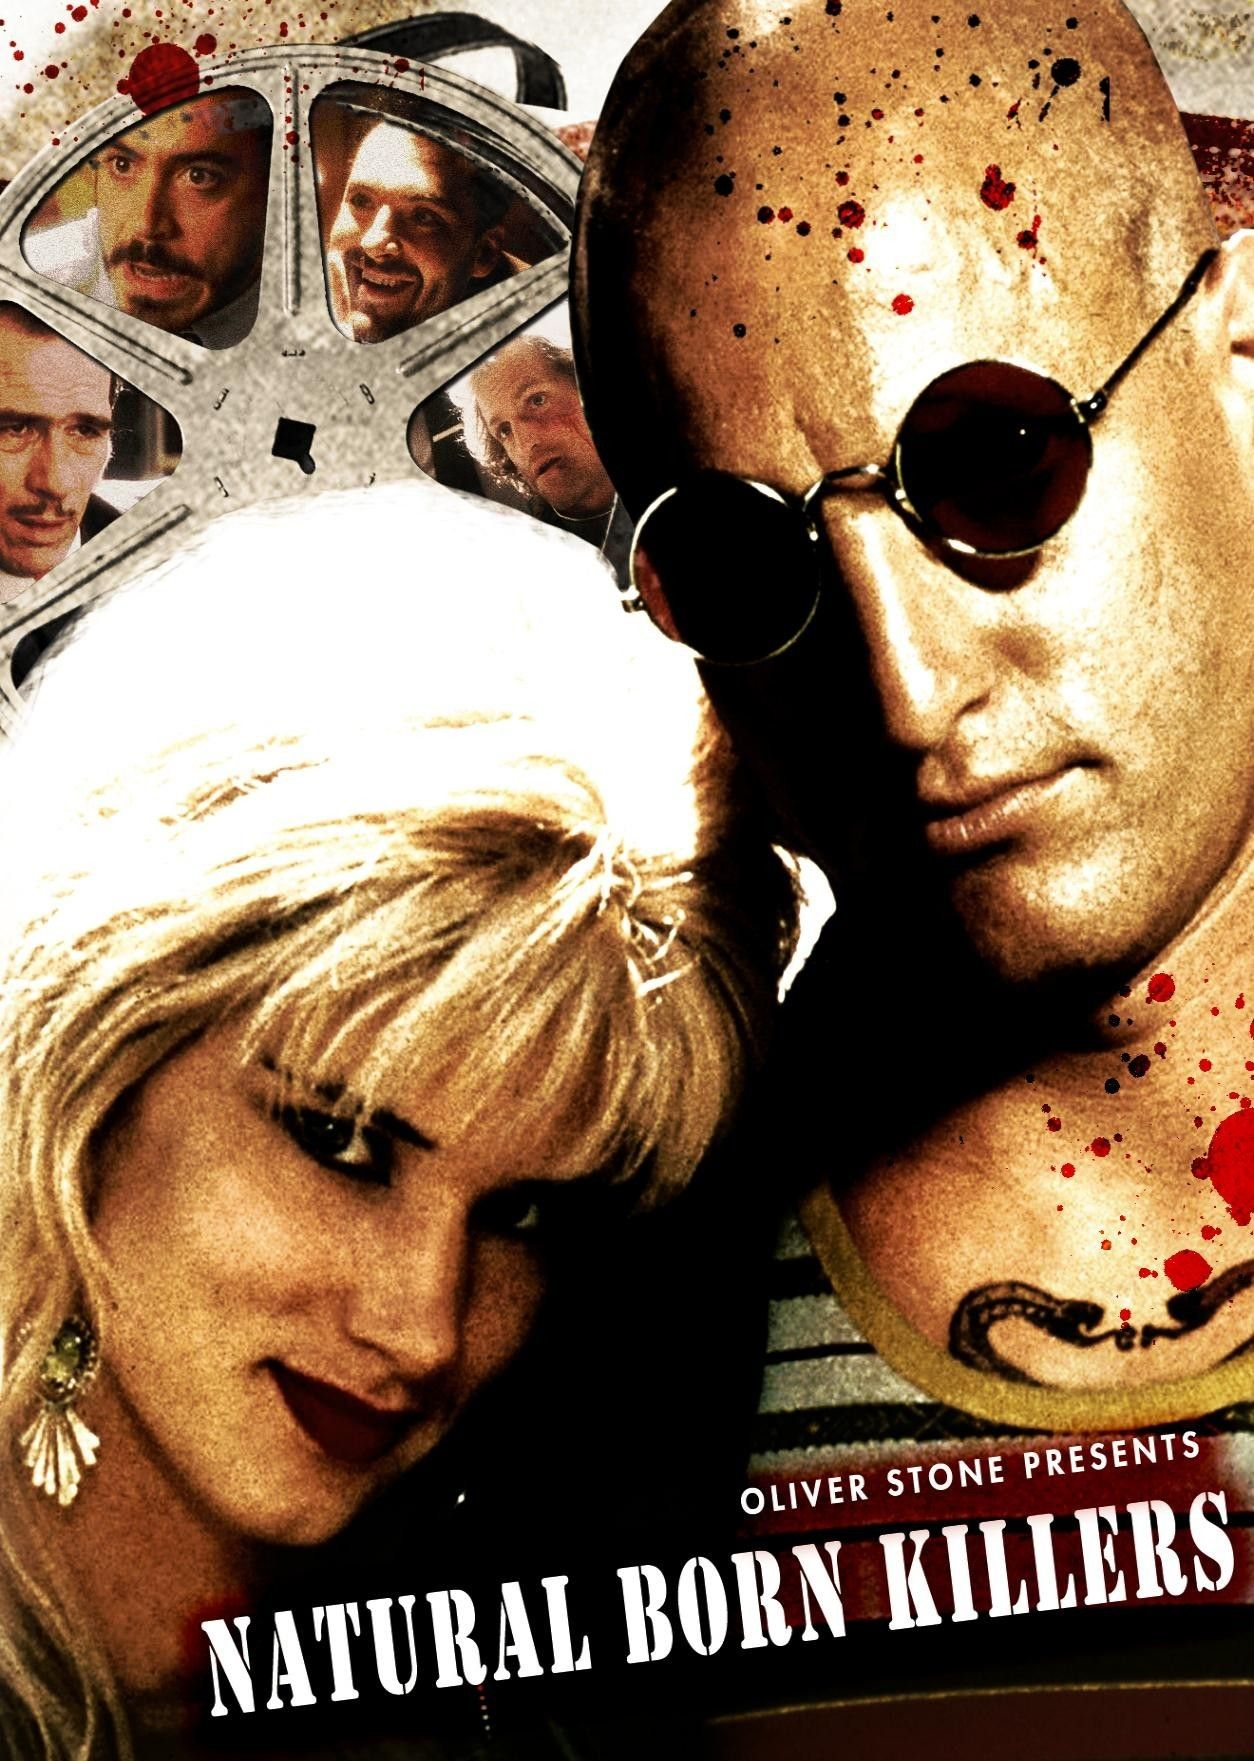 a review of quentin tarantinos story natural born killers Quentin pitched natural born killers in less than a minute – bender loved the  sound of it  what can be learned from tarantino's story.